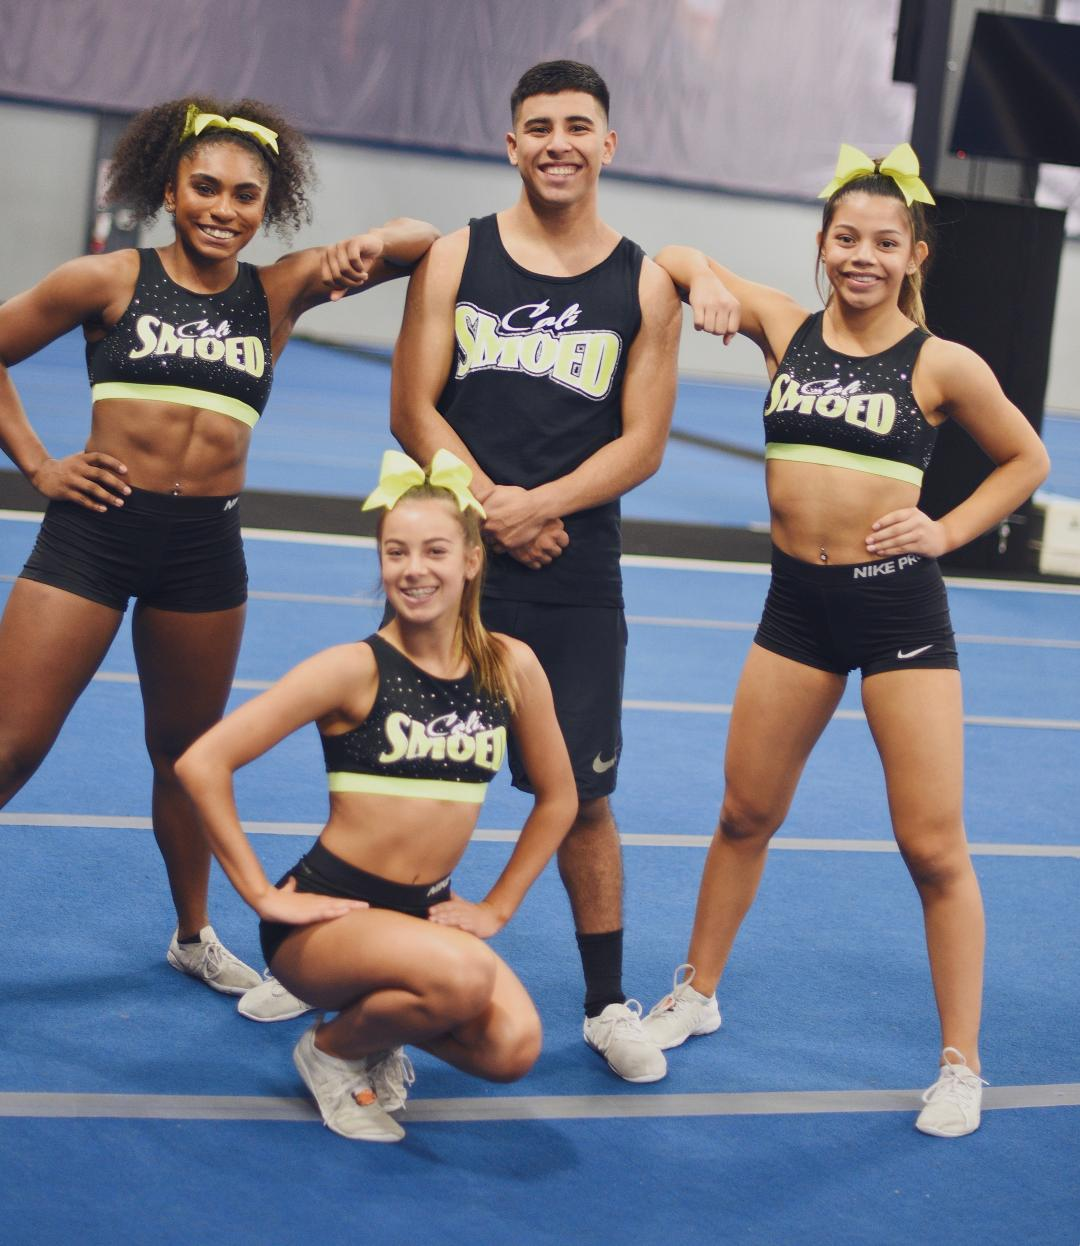 Custom Sports Bras >> Custom Sports Bras Allstar Cheer Bling